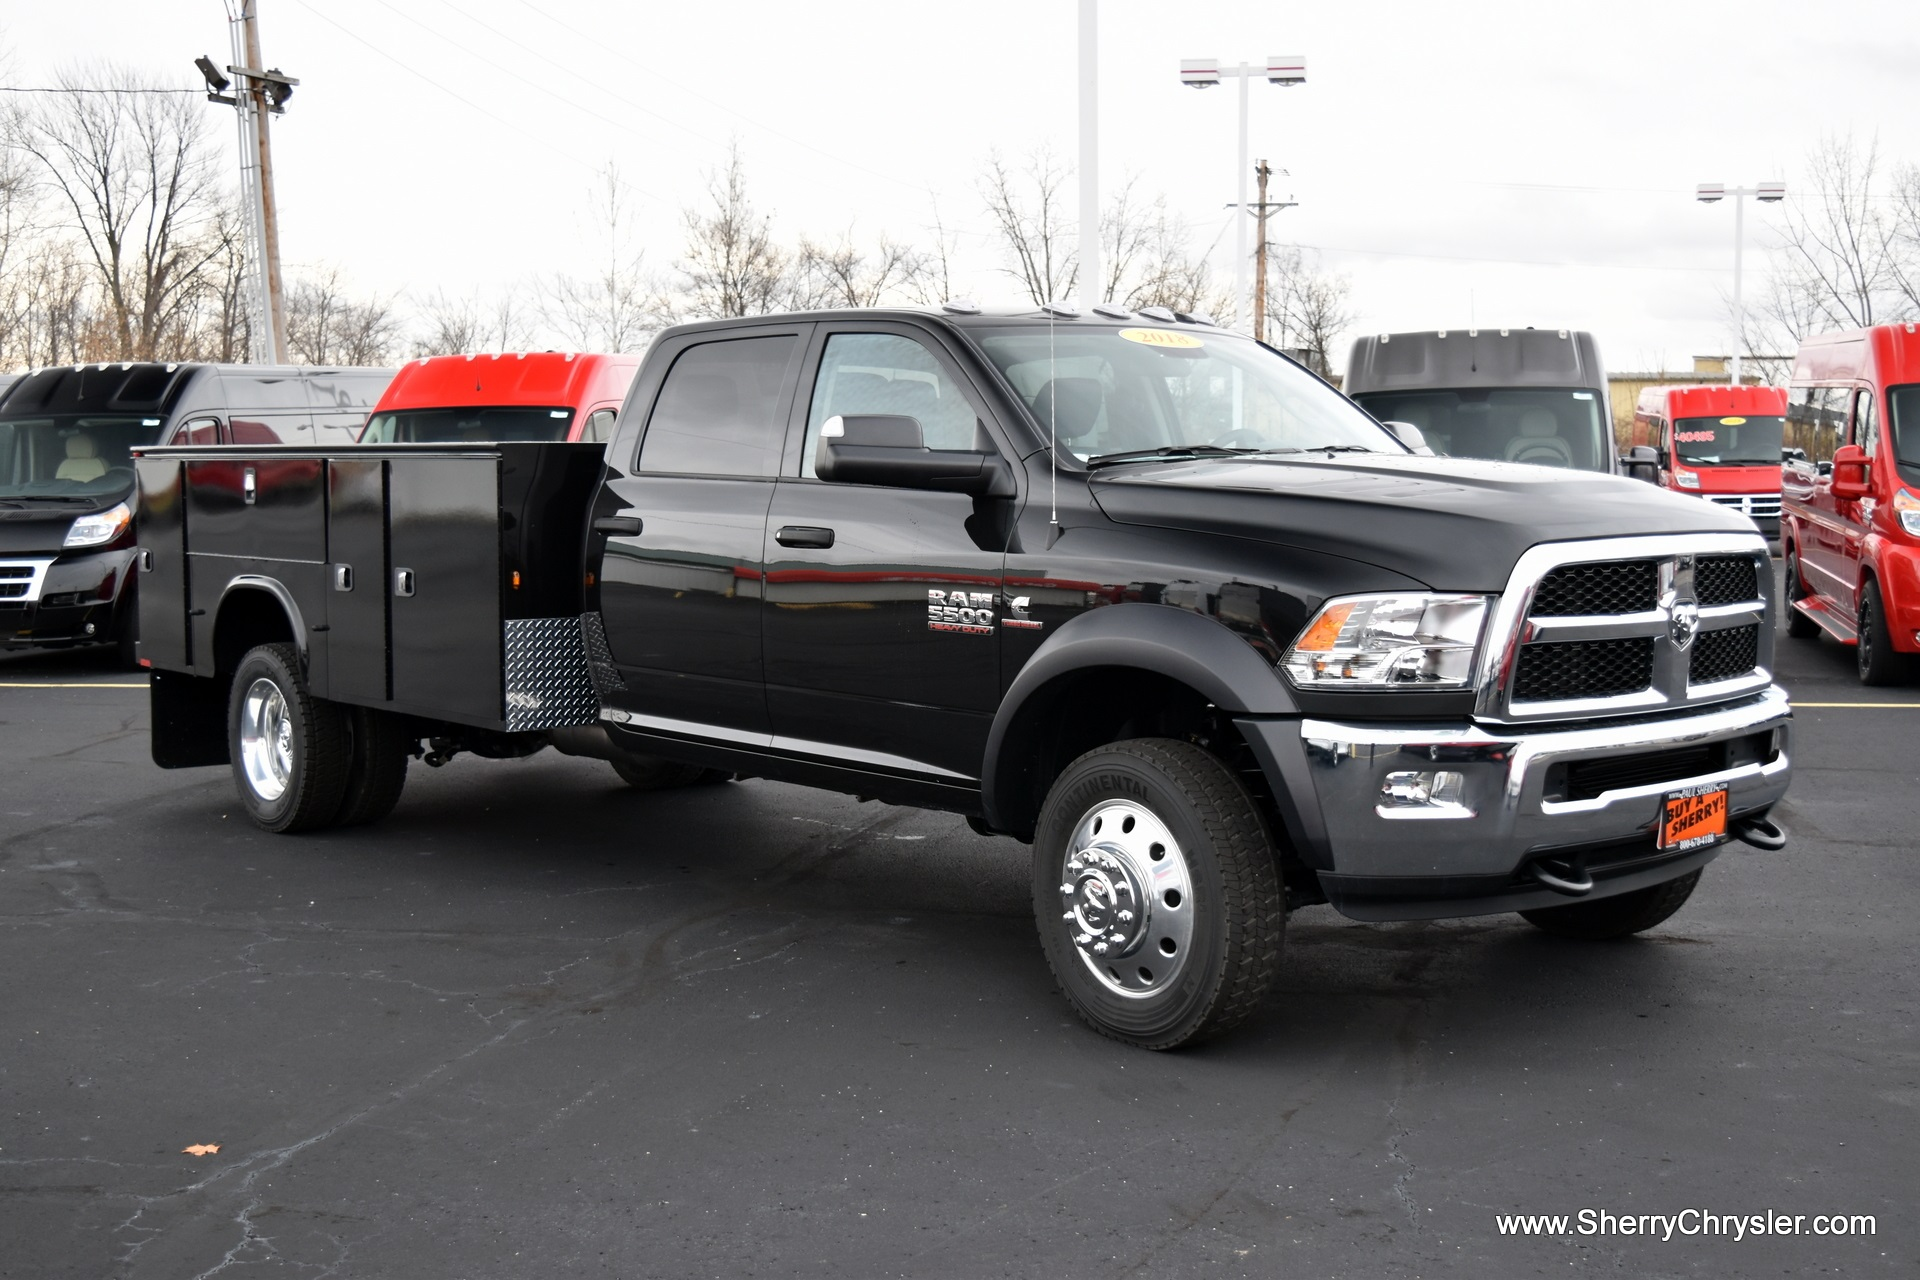 Dodge Ram 5500 >> New Ram 5500 Trucks In Ohio Inventory Or Custom Orderpaul Sherry